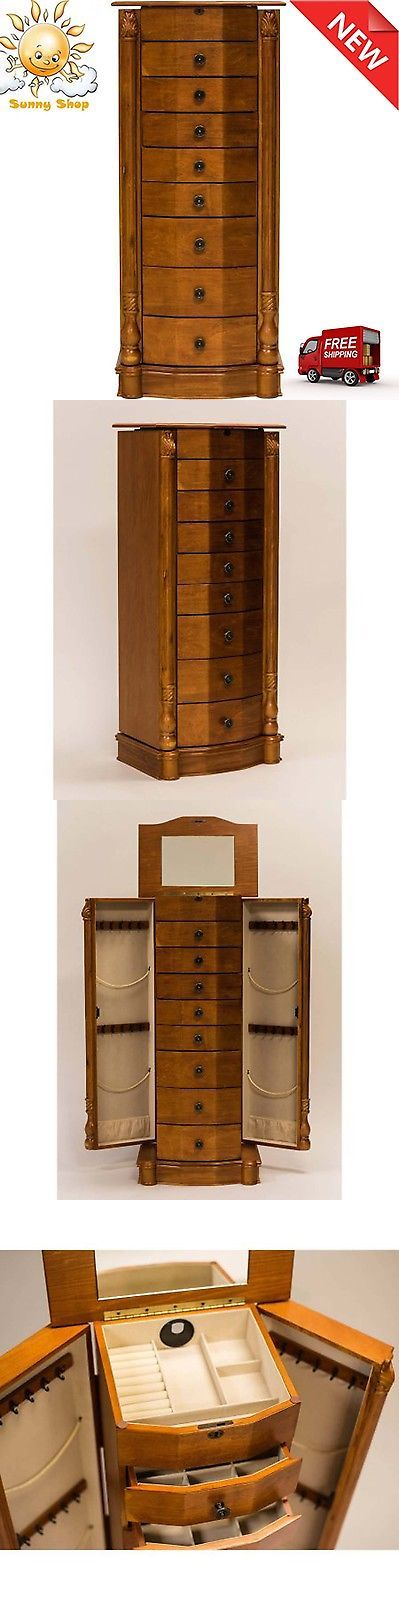 Multi-Purpose 168165: Honey Oak Armoire Louis Cabinet Jewelry Stand Necklace Hooks Jewelry Mirror 40 BUY IT NOW ONLY: $321.8